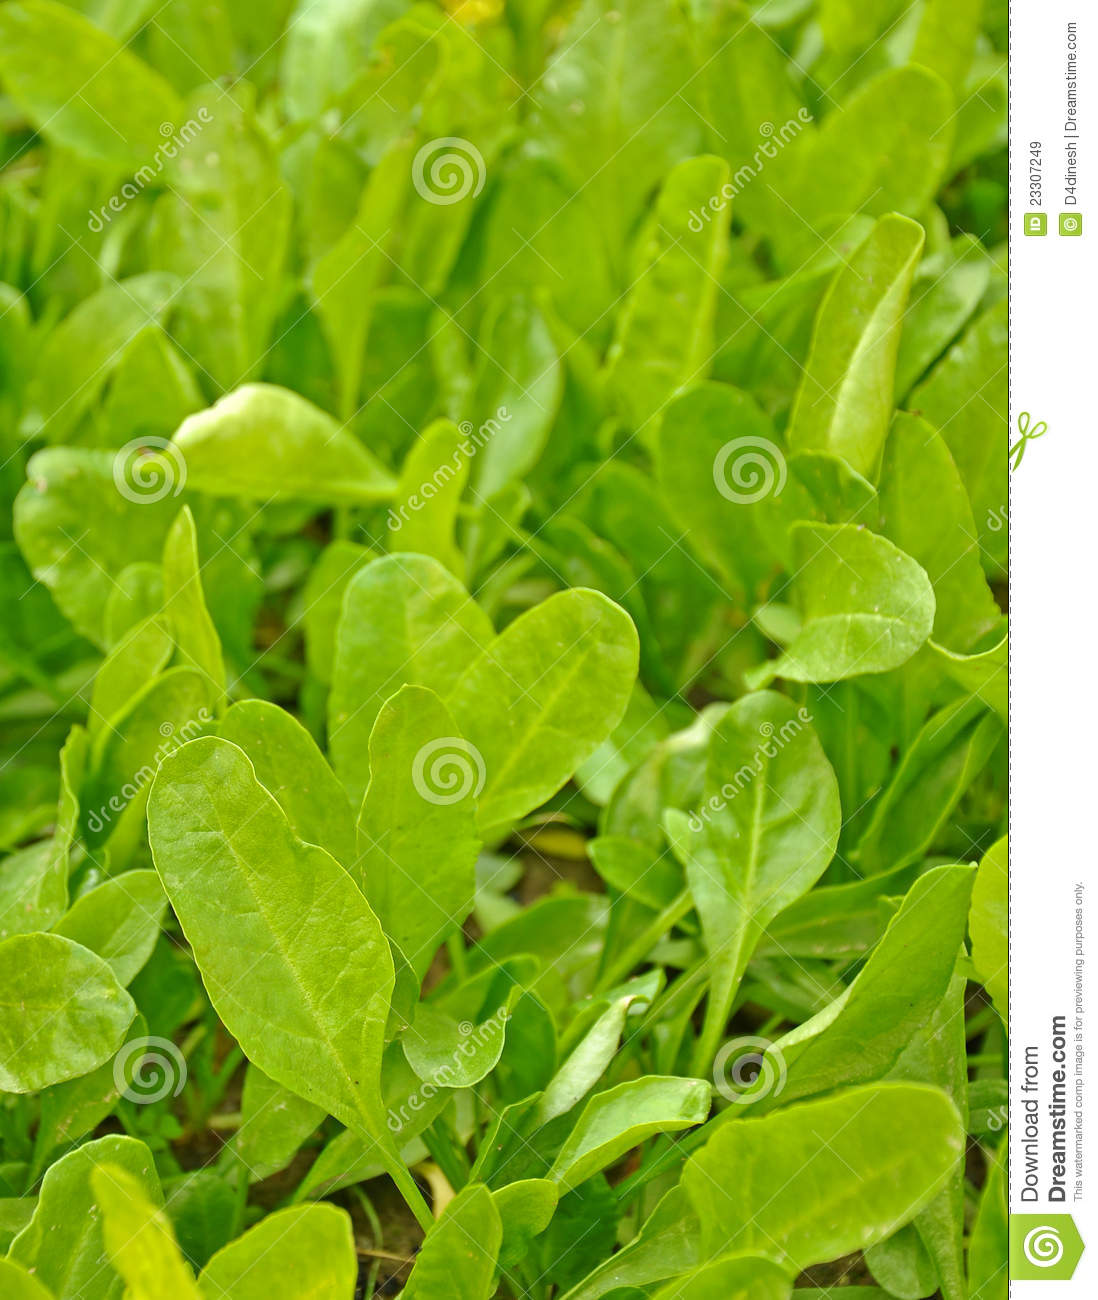 The spinach leaf essay